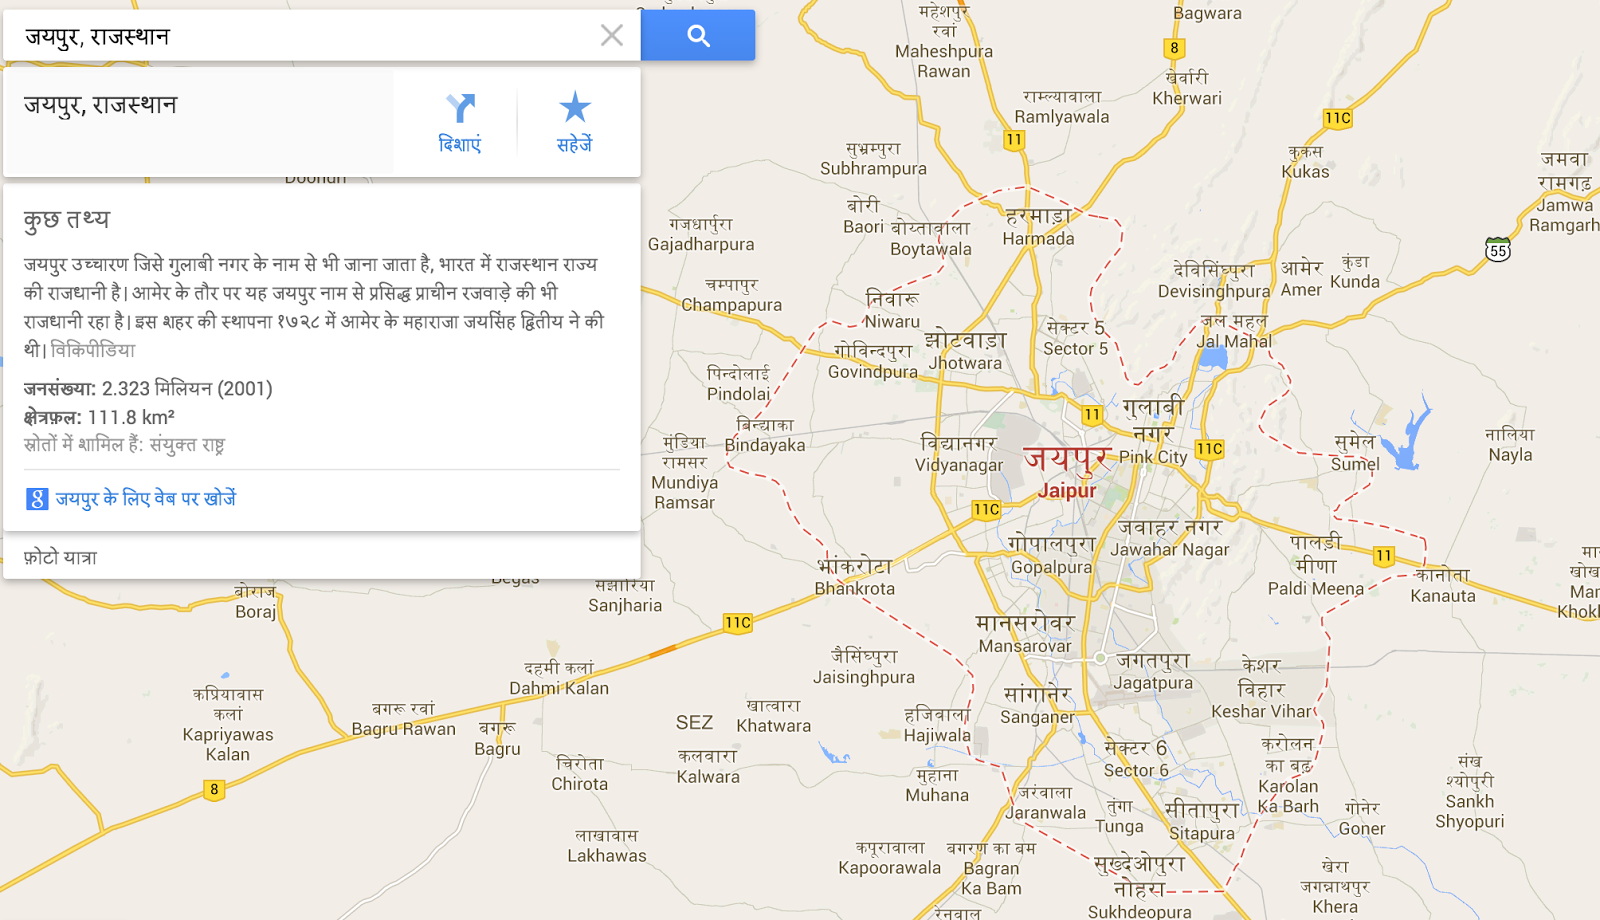 Hindi version of google maps launched geospatial world according to google the new maps will be available on the new google maps and on the latest google maps for mobile app on android devices running versions gumiabroncs Choice Image